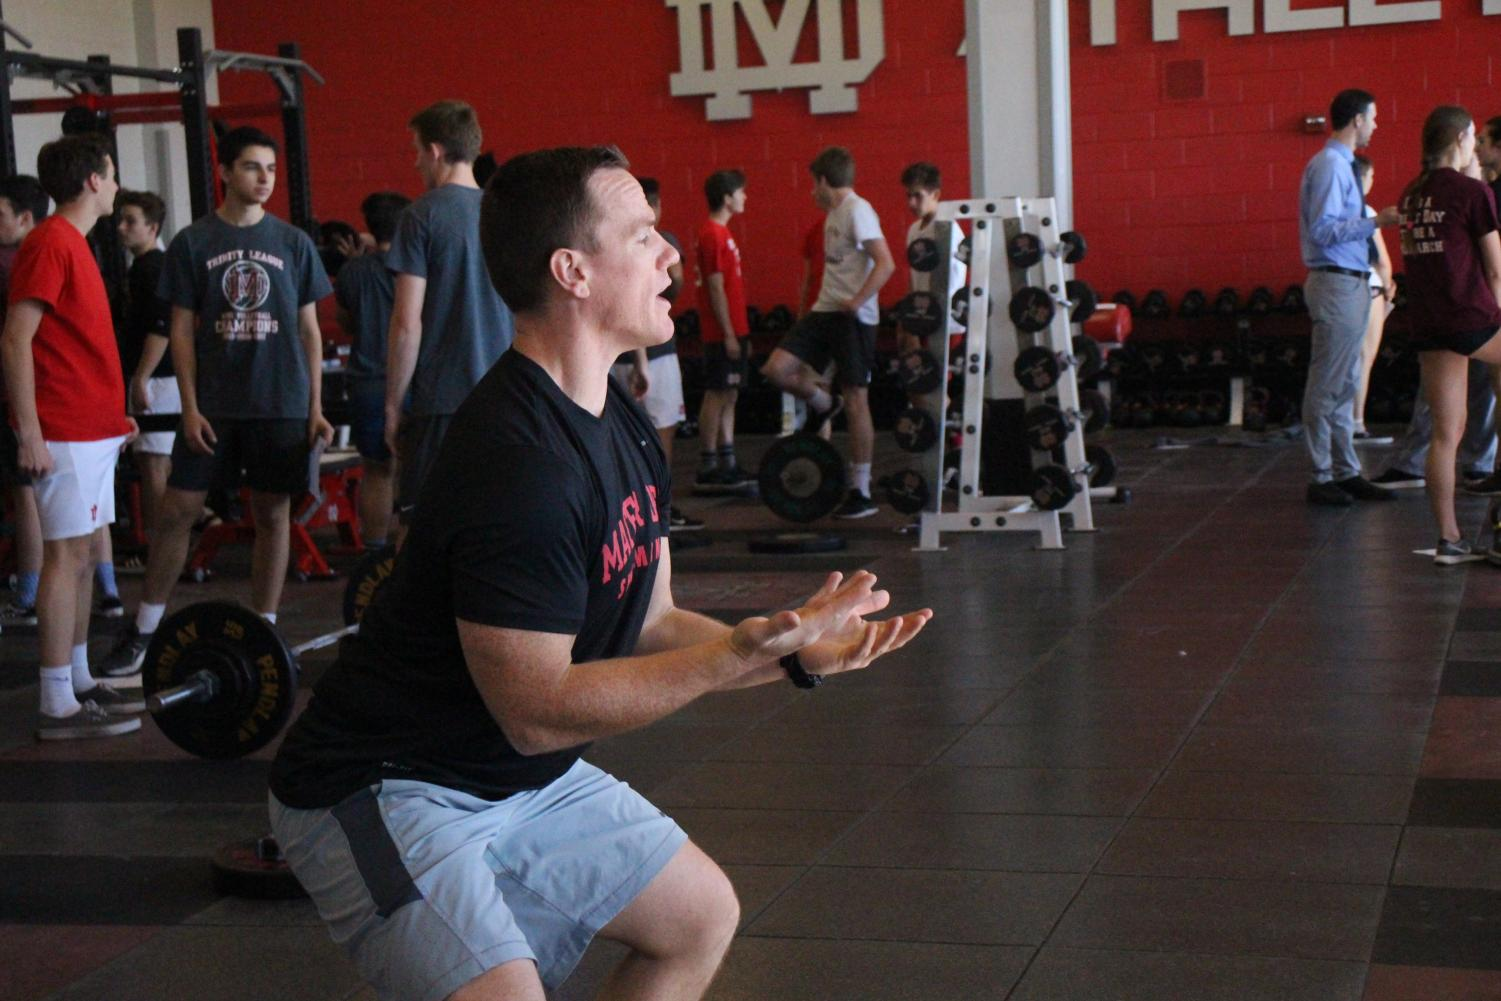 LEADING+THE+WAY%3A+Assistant+strength+and+conditioning+coach+Bubba+Reynolds+instructs+the+girls+volleyball+team+on+the+proper+form+for+their+workout.+Reynolds+helps+coach+many+teams+during+the+many+weight+lifting+blocks.+%22I+always+think+strength+and+conditioning+is+all+like+swim+lessons%2C+so+if+you+can%E2%80%99t+tread+water+I%E2%80%99m+not+going+to+have+you+go+into+the+deep+end.%22+Reynolds+said%2C+%22So+it%27s+just+as+you+guys+continue+to+take+on+new+skills+then+we+can+continue+to+work+on+more+complex+skills.%22%0A%0A%0A%0A%0A%0A%0A%0A%0A%0A%0A%0A%0A